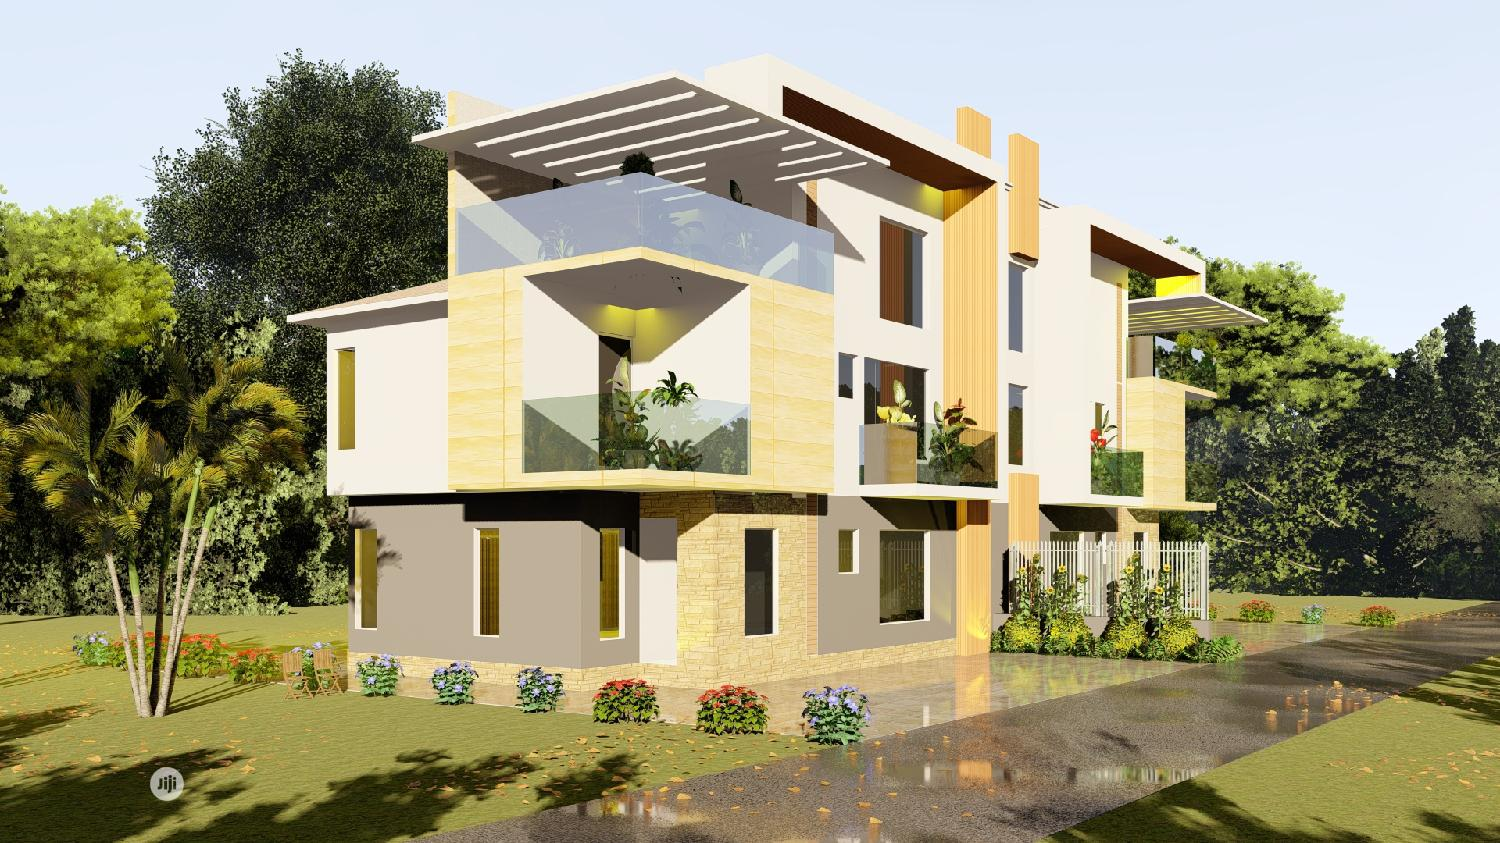 350sqm Land For 5 Bedroom Simi Detached Duplex At Life Camp | Land & Plots For Sale for sale in Gwarinpa, Abuja (FCT) State, Nigeria